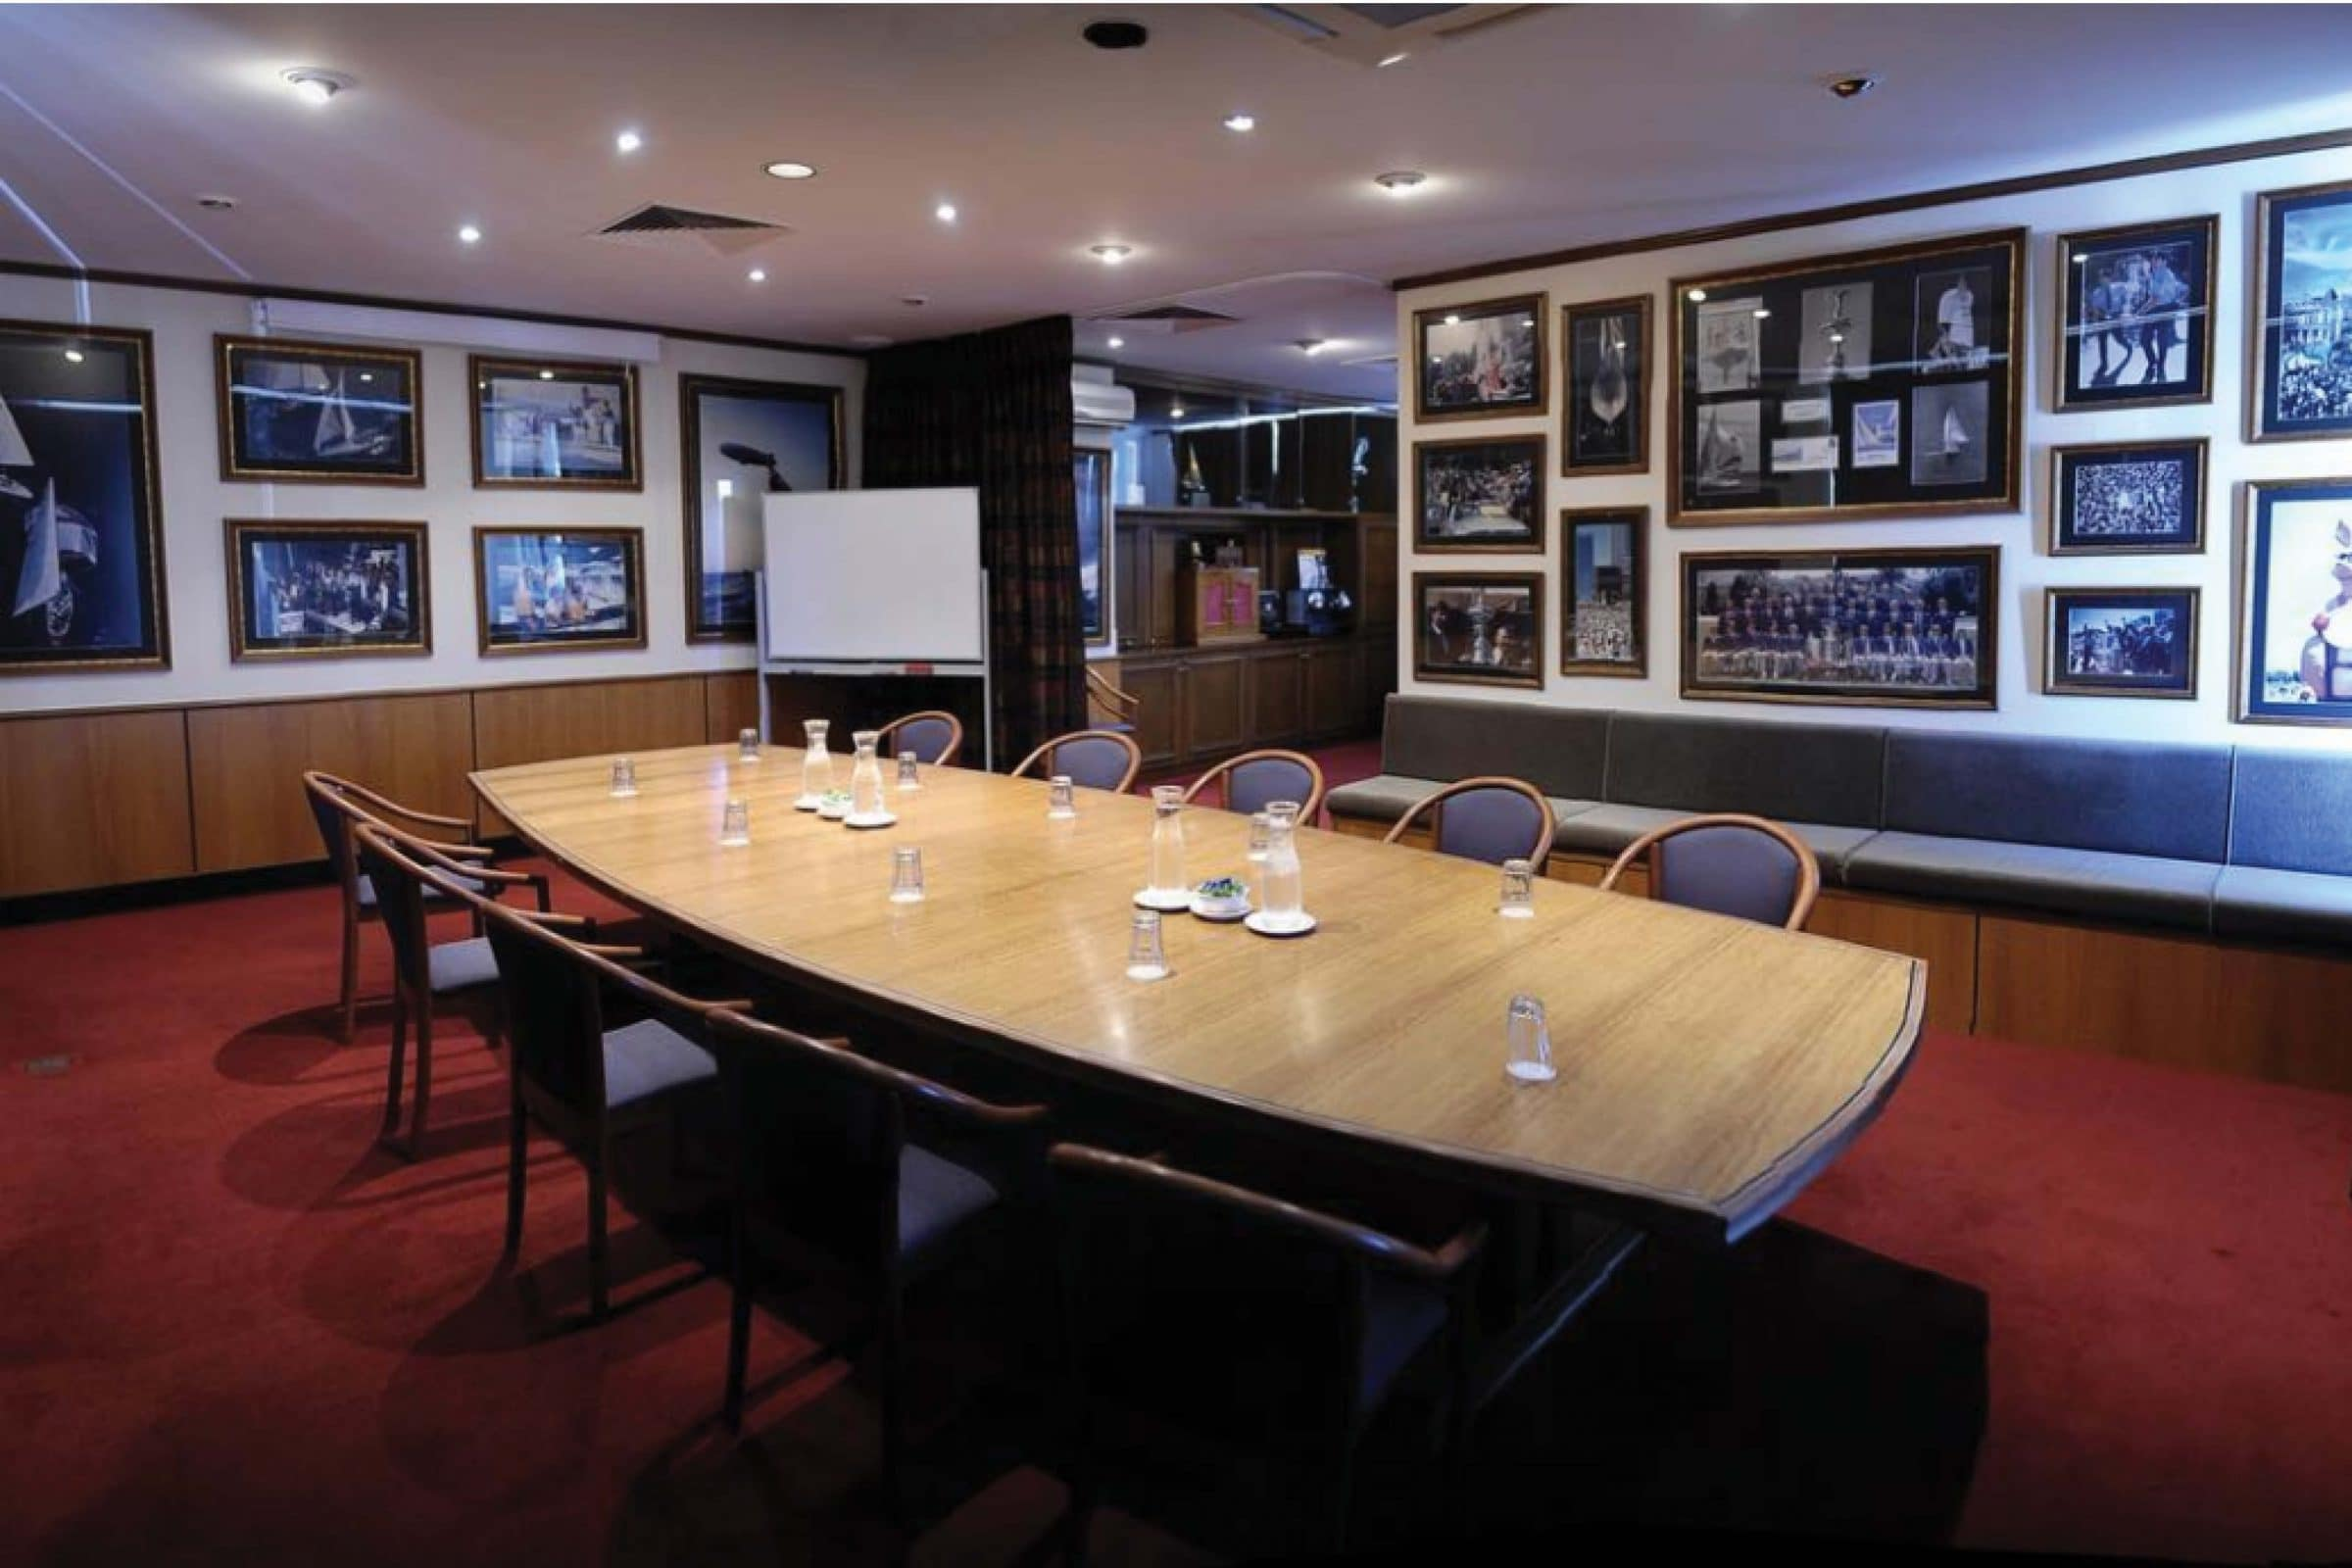 bond room meeting room at the royal perth yacht club